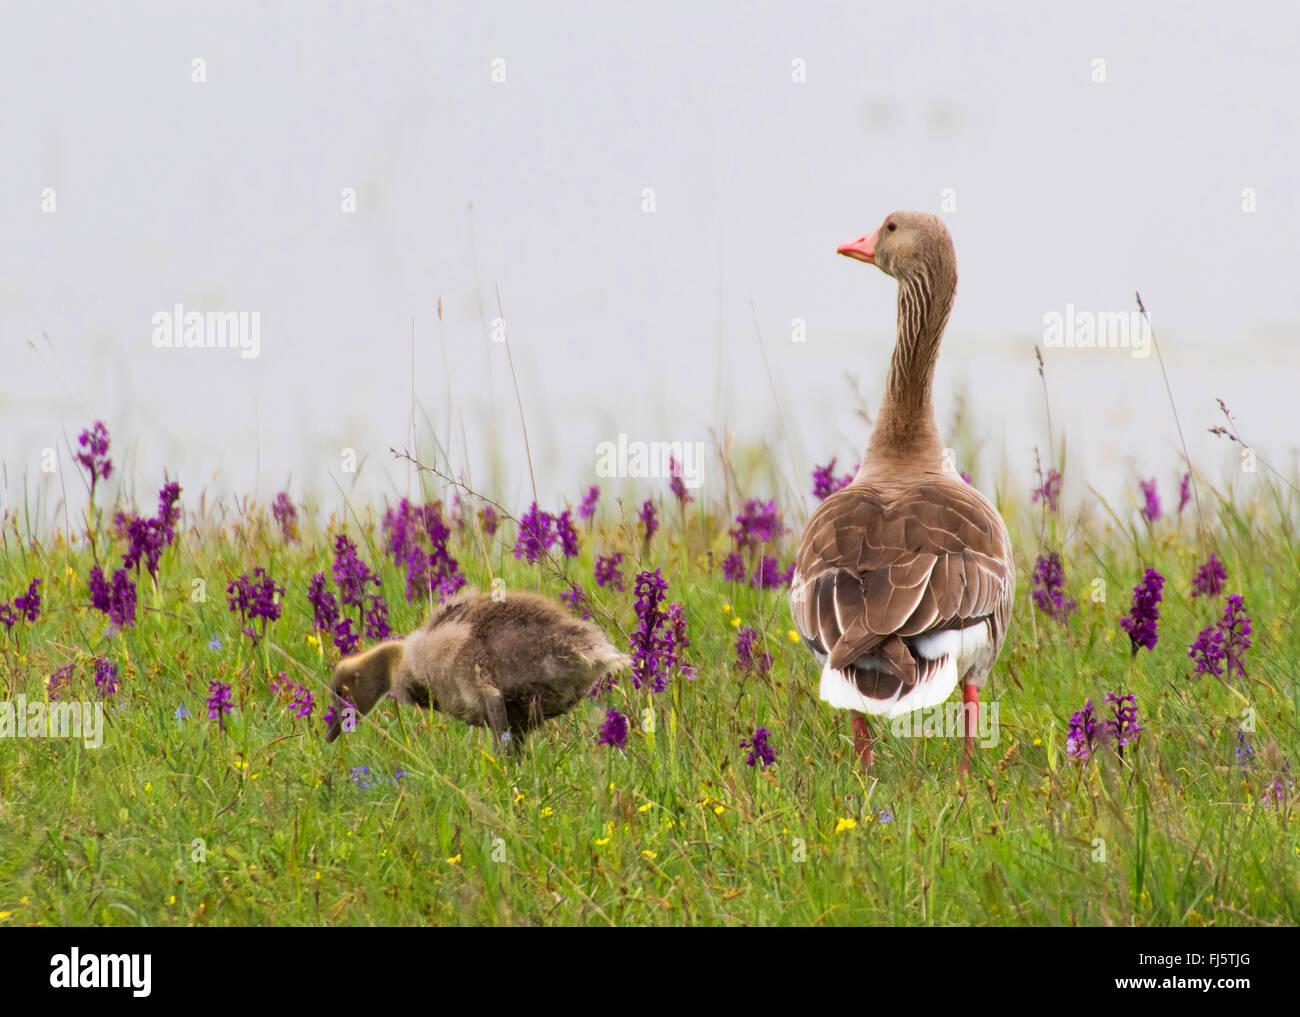 greylag goose (Anser anser), watchful greylag goose mother in an orchid meadow, Austria, Burgenland - Stock Image